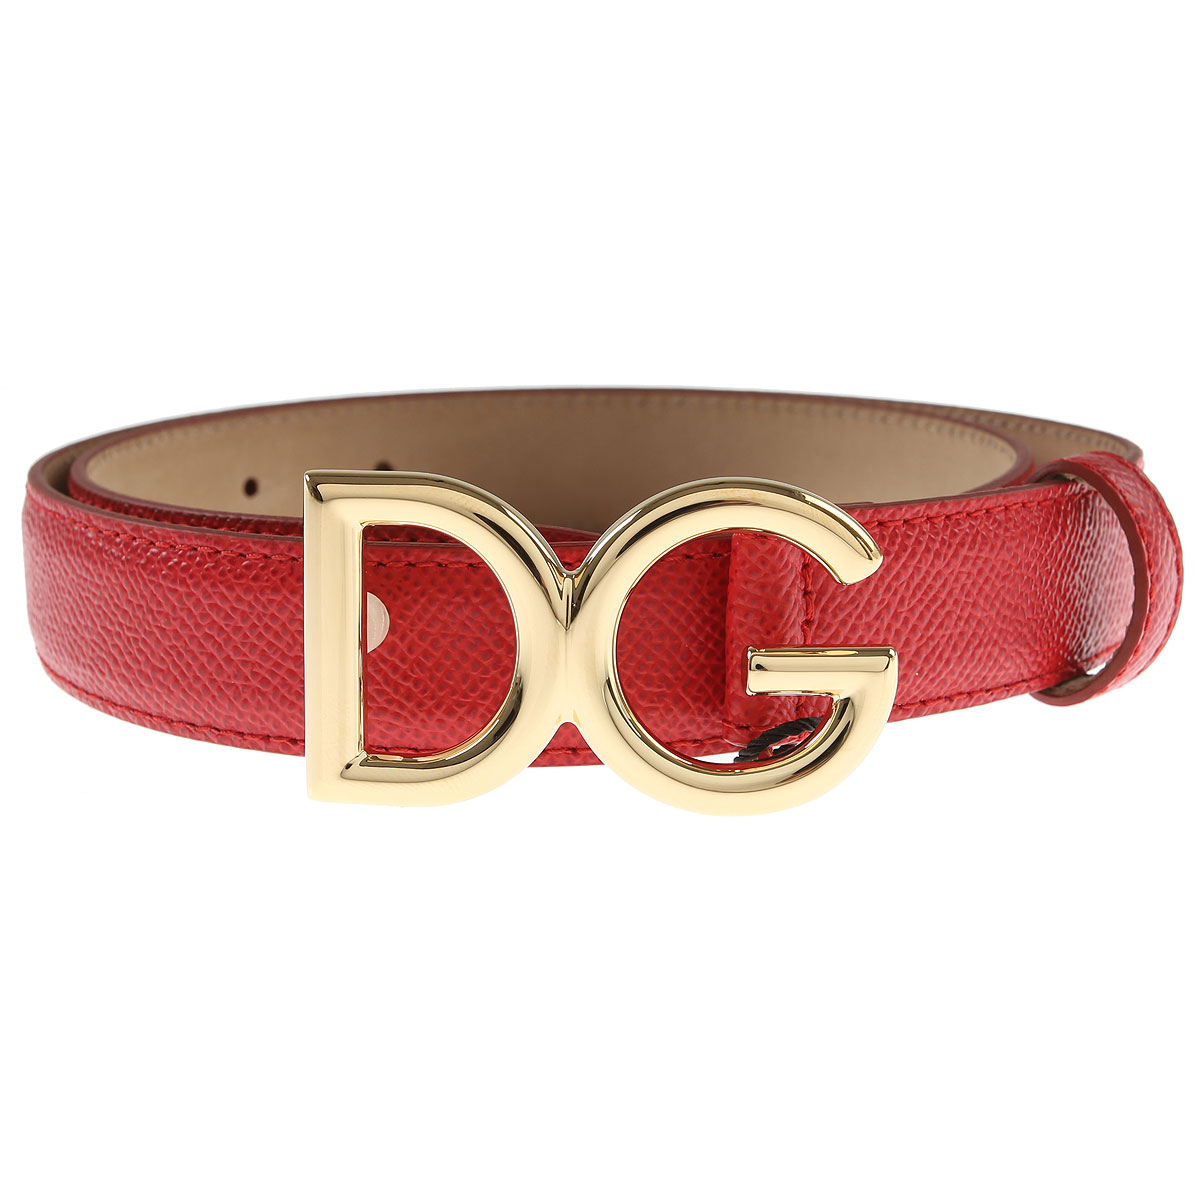 Dolce & Gabbana Womens Belts, Red, Leather, 2017, 32 inches - 80 cm 36 inches - 90 cm